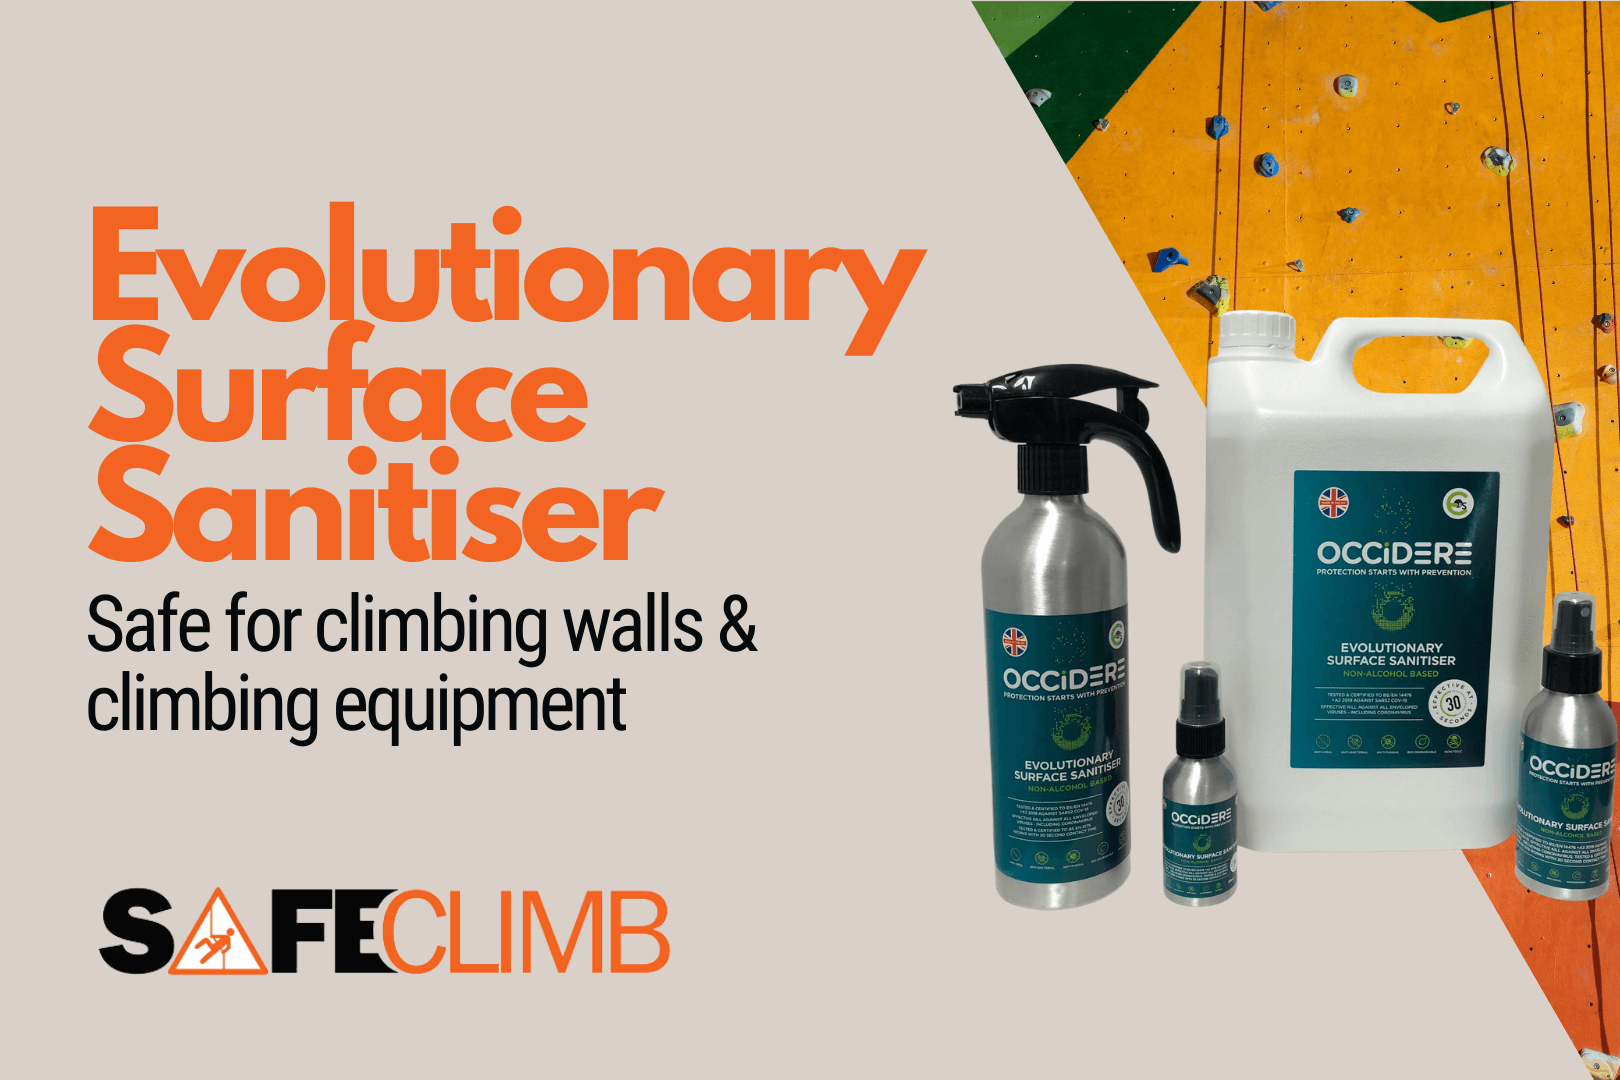 Looking for a Sanitiser That's Safe for Climbing Walls? Try Occidere